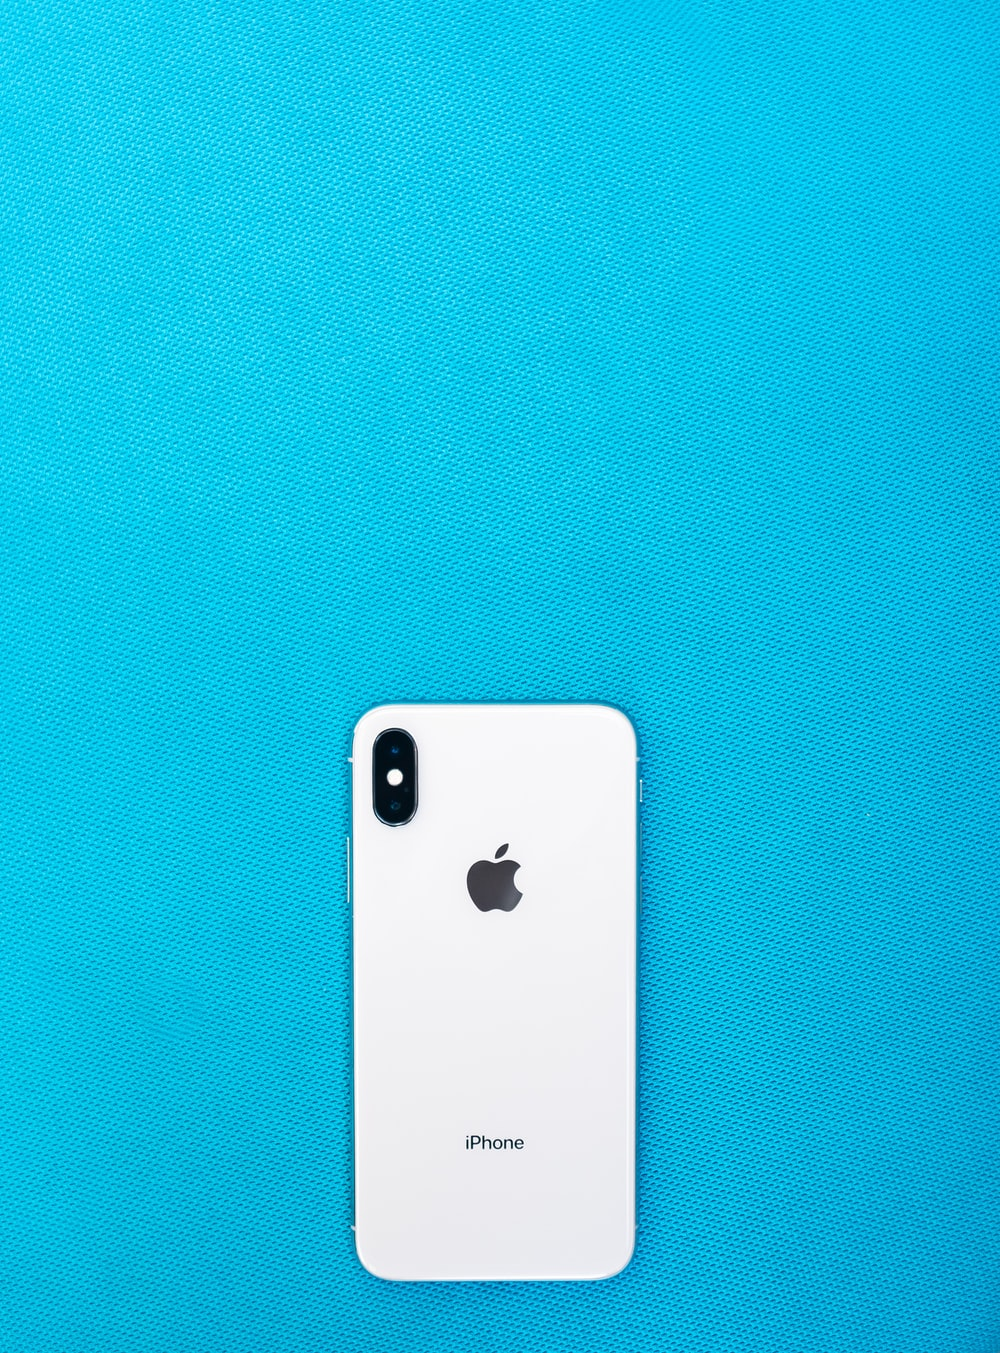 500 Iphone 10 Pictures Hd Download Free Images On Unsplash